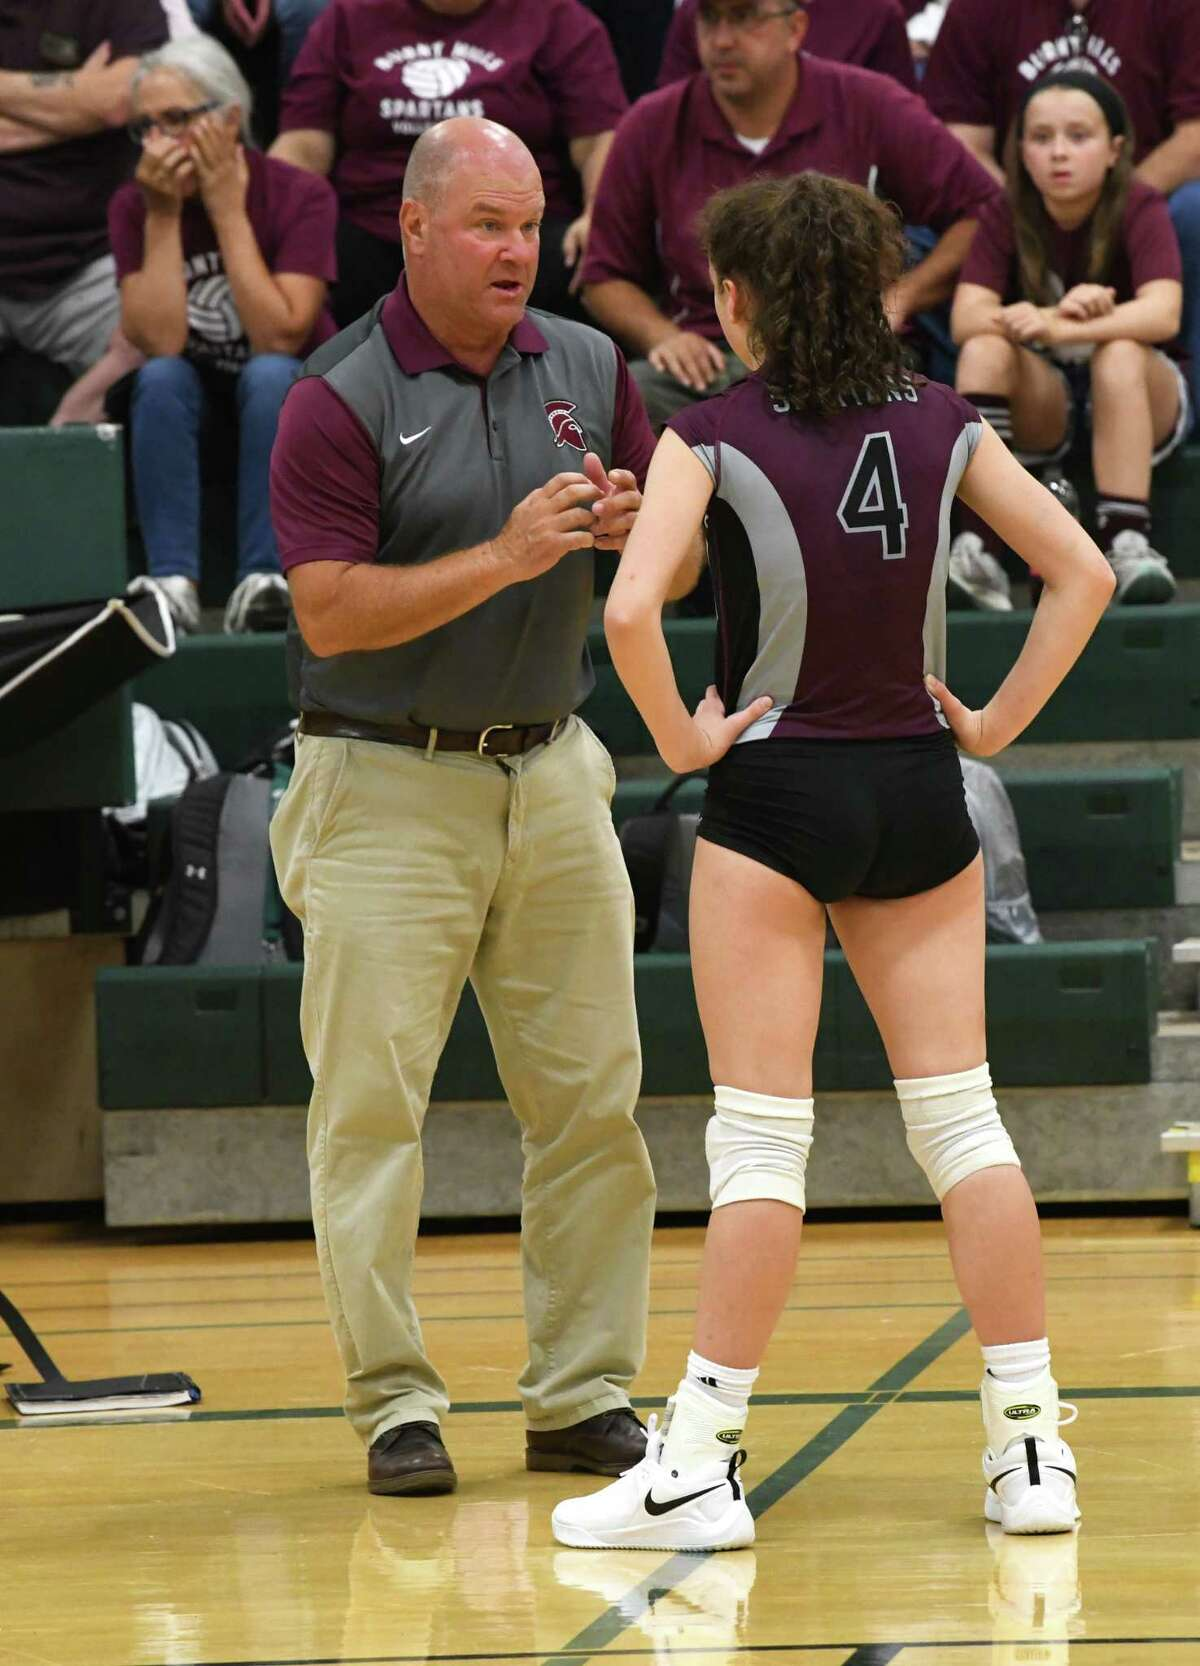 Burnt Hills coach Gary Bynon talks to Claire Isaksen during a volleyball match against Shenendehowa on Thursday, Sept. 12, 2019 in Clifton Park, N.Y. (Lori Van Buren/Times Union)